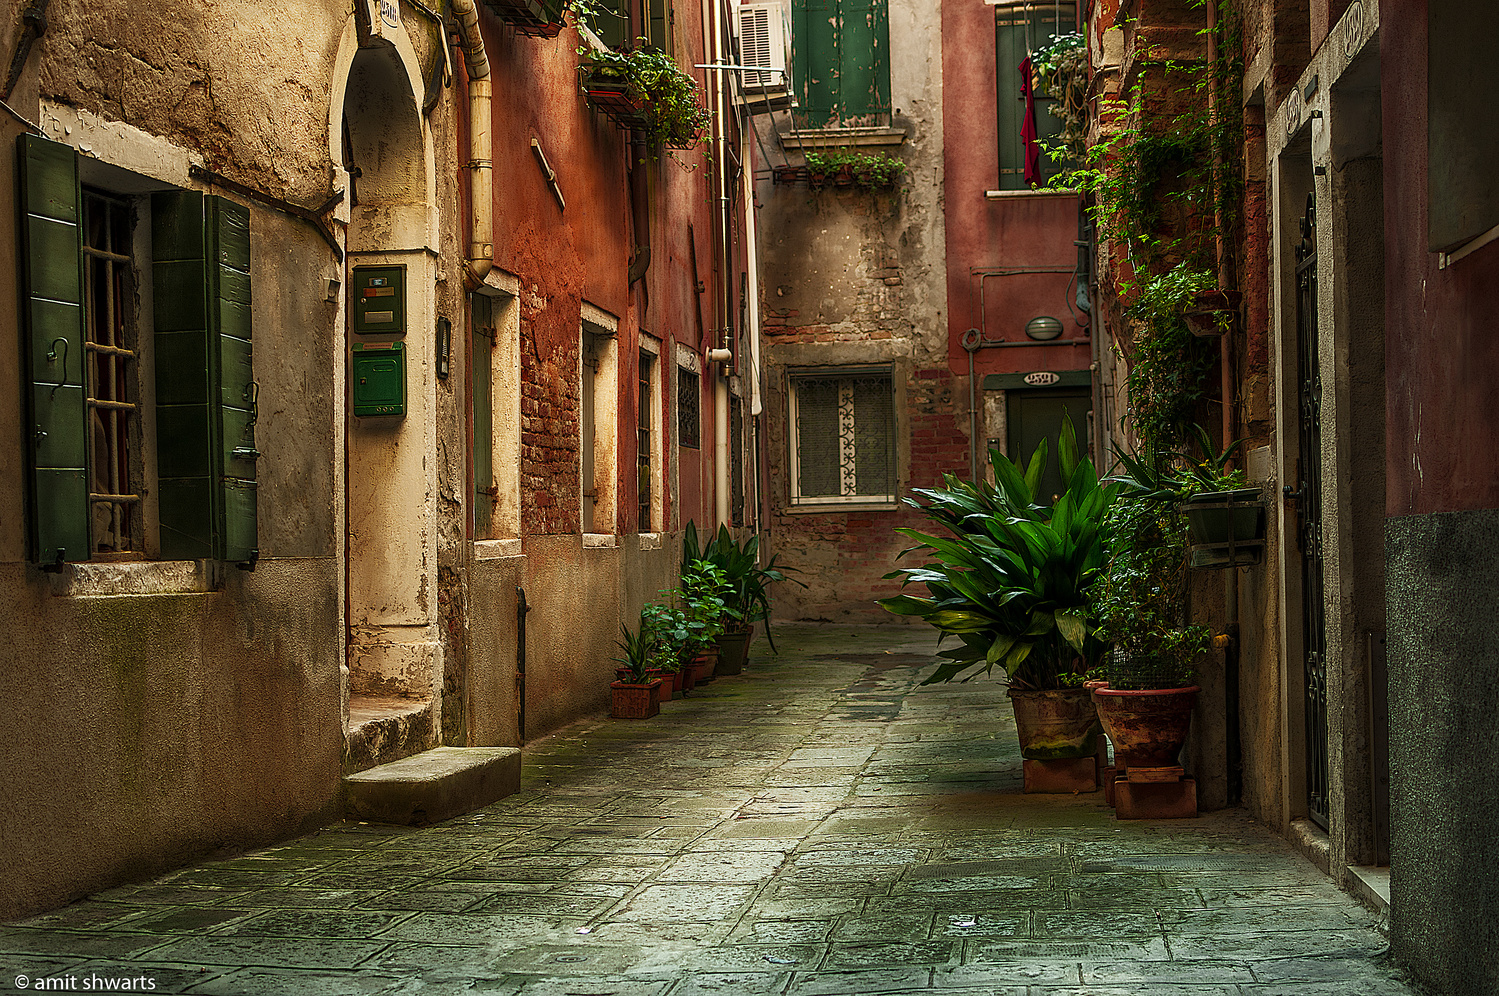 Behind Venice by Amit Shwarts